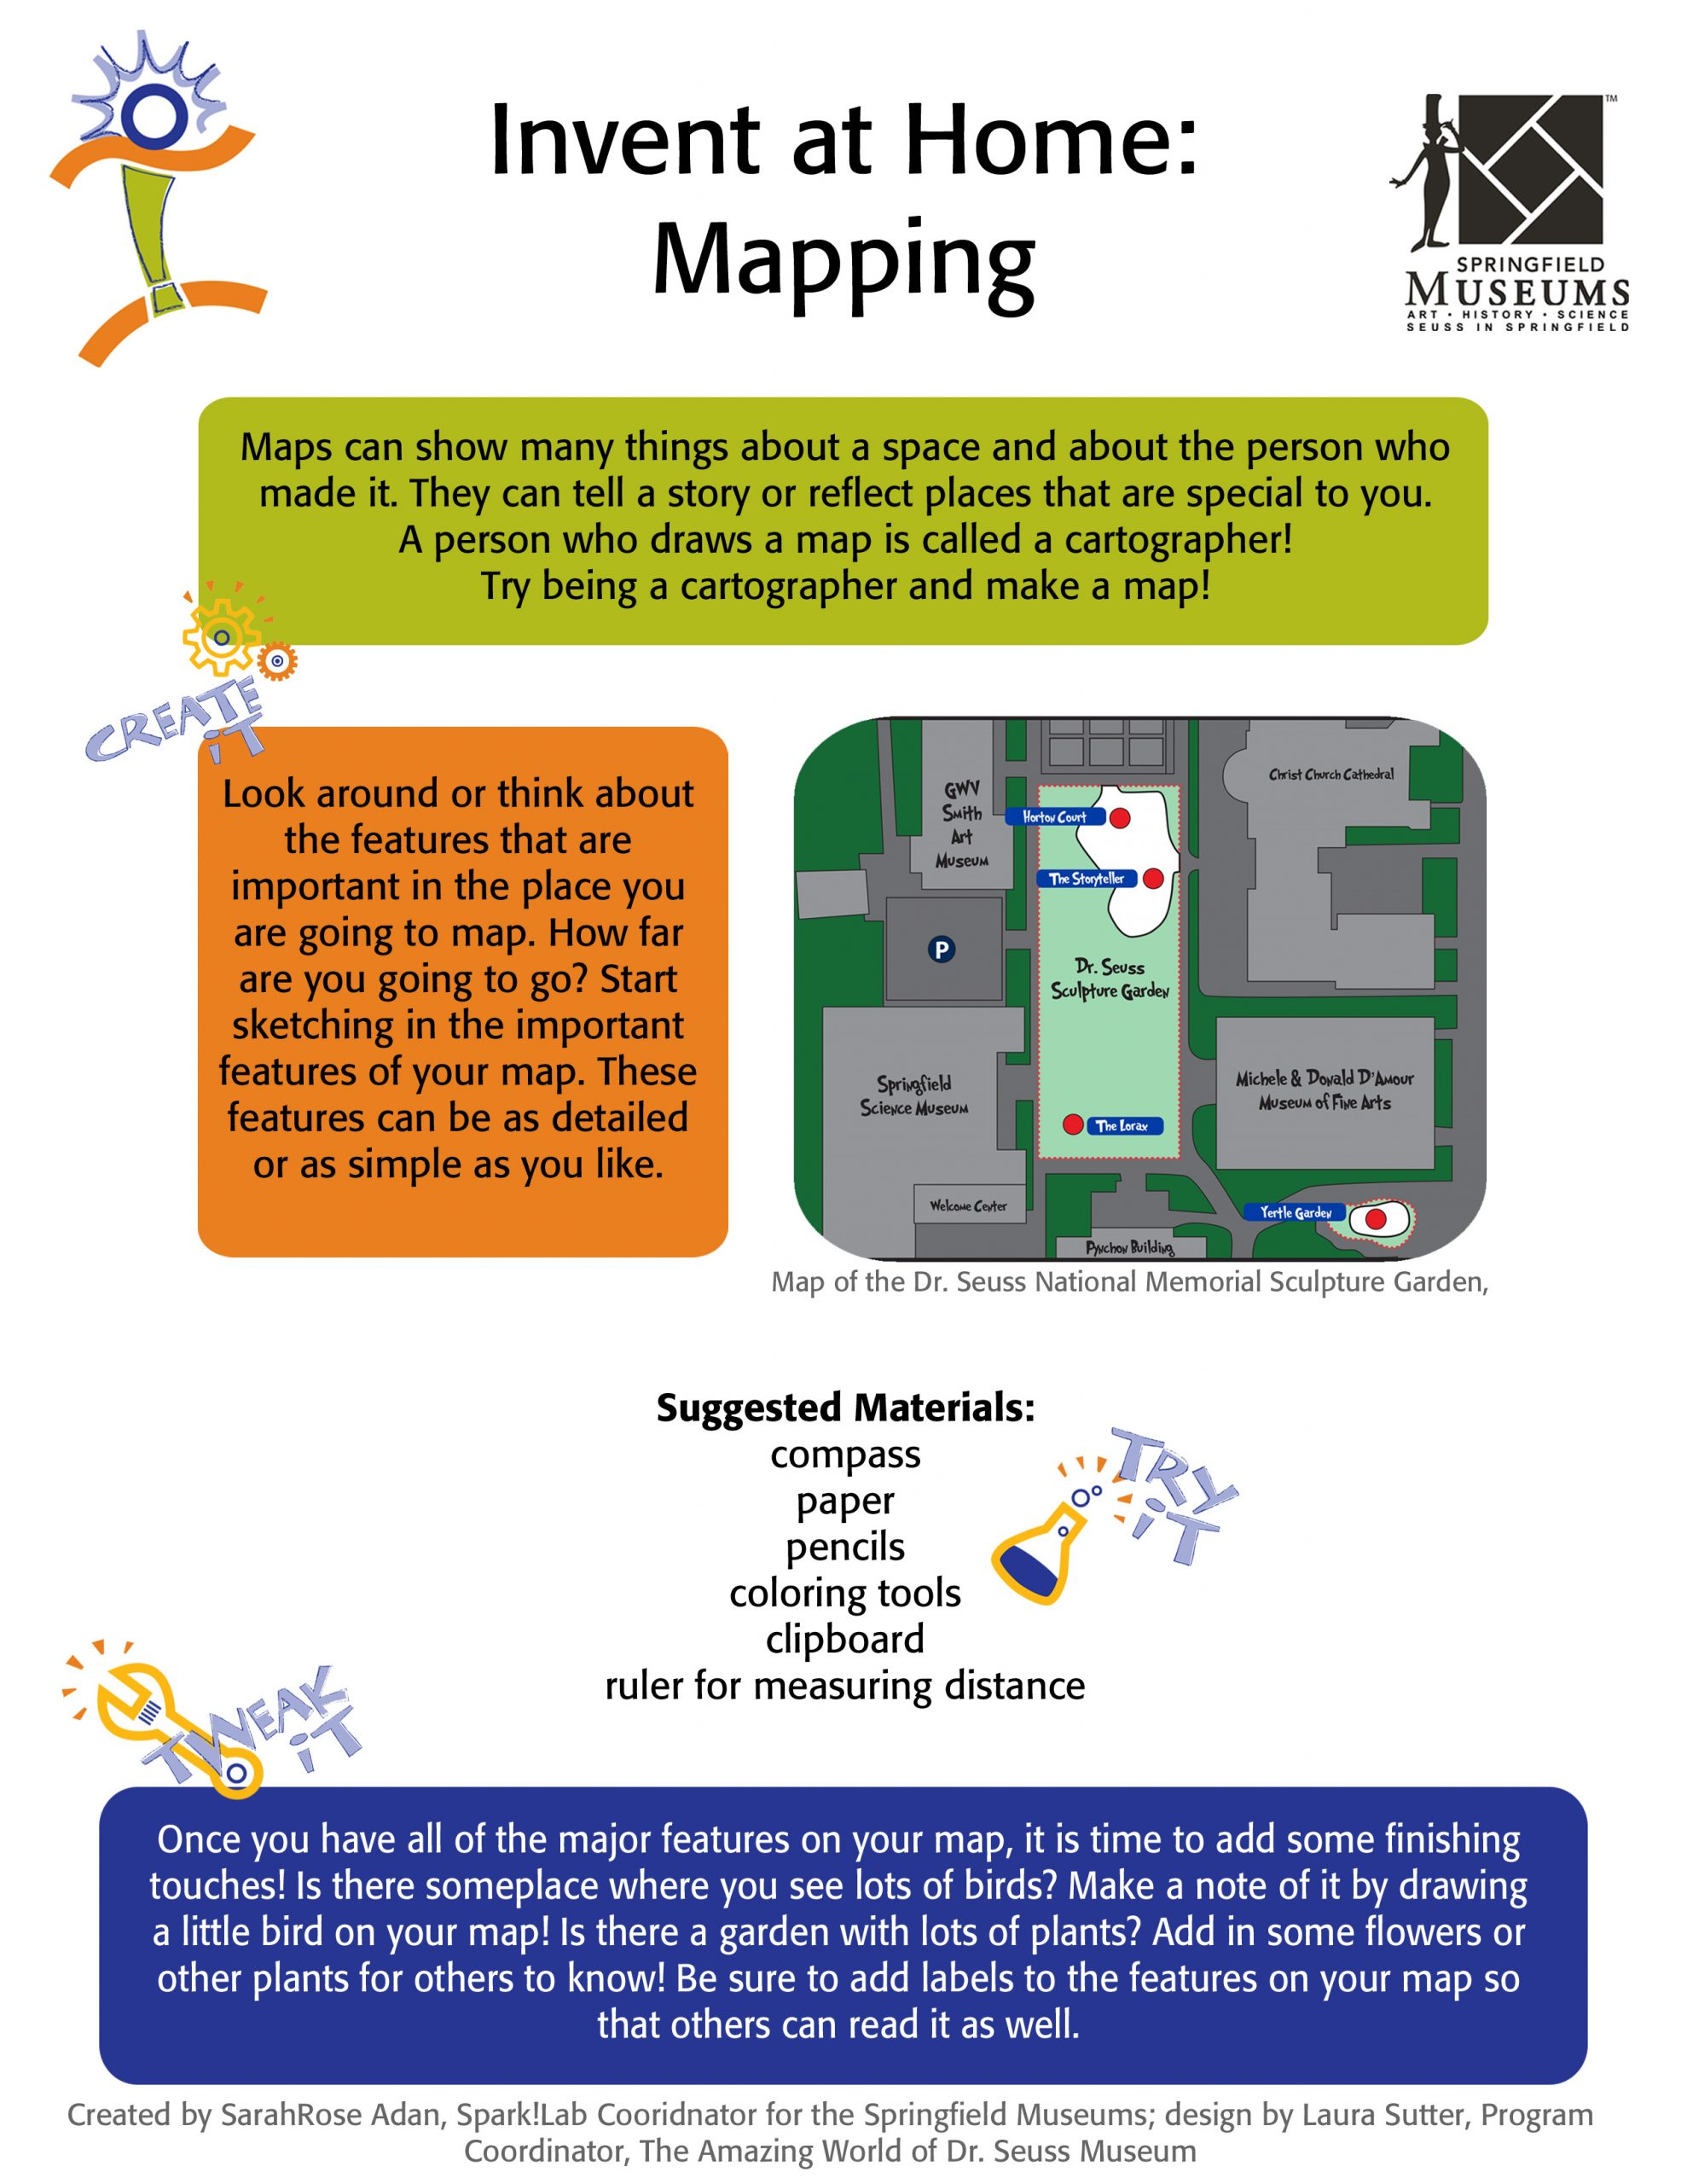 Invent at Home: Mapping Activity Instructions